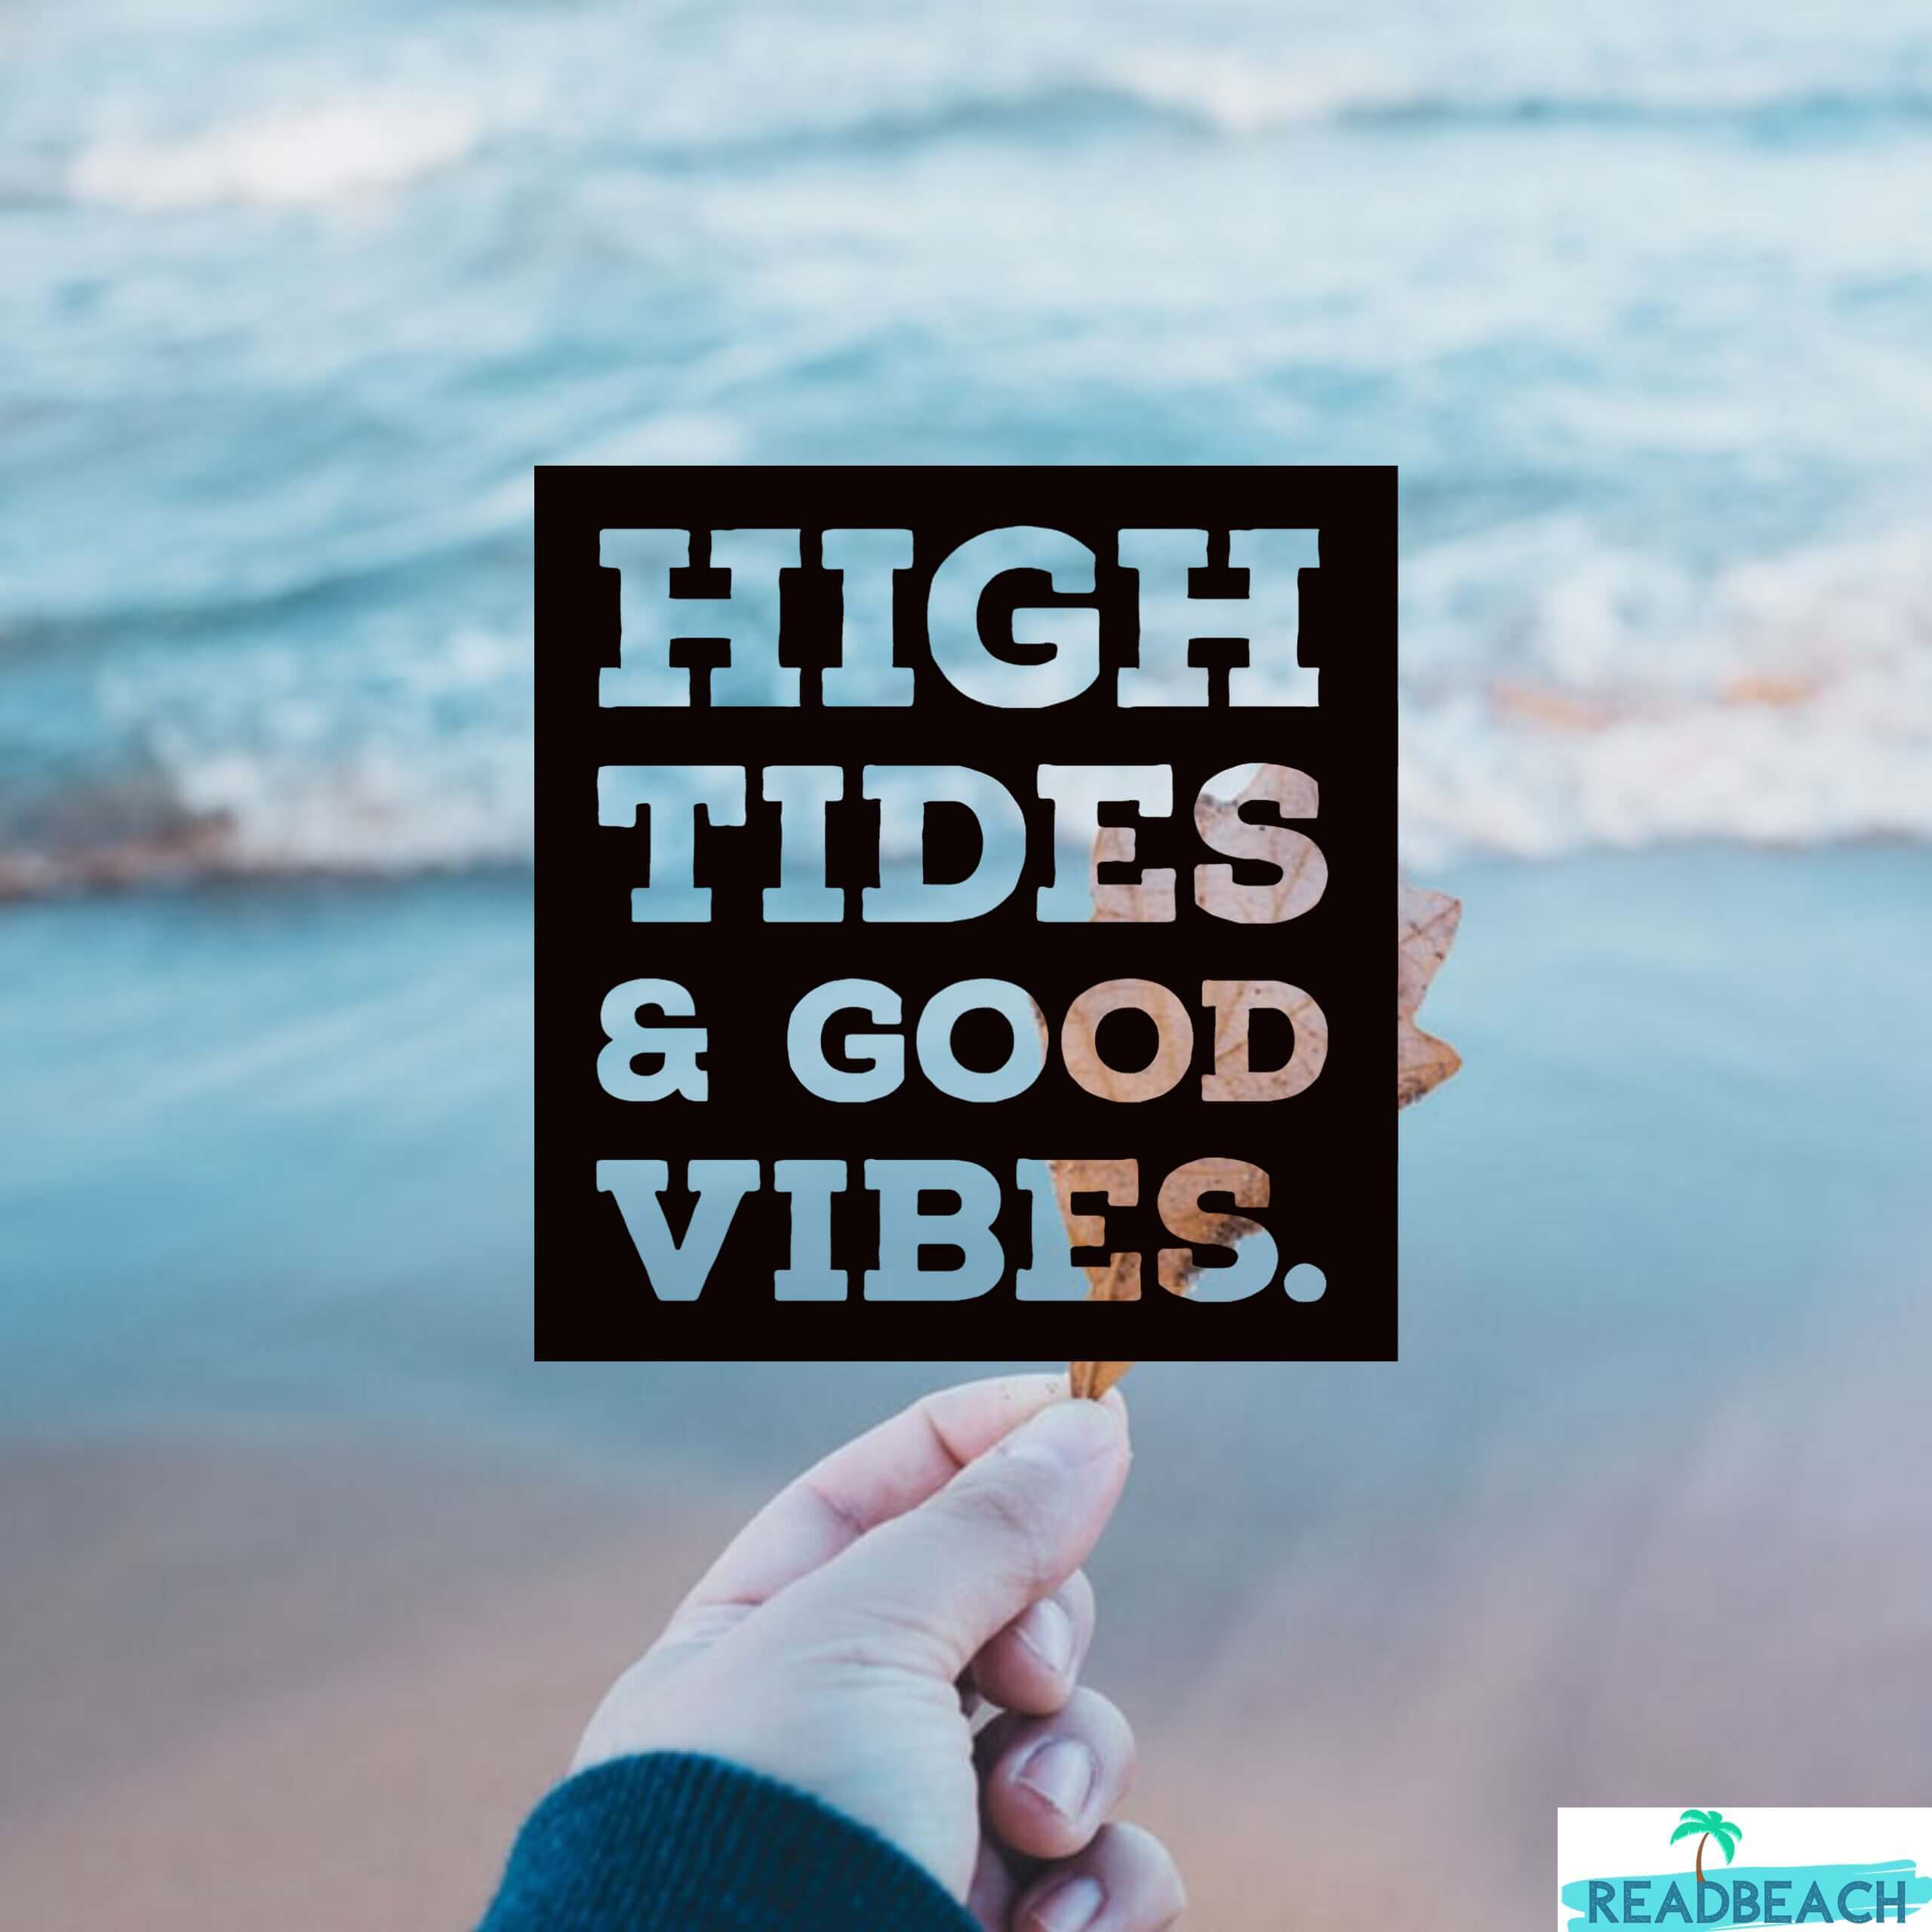 2 Tides Quotes - High tides & Good vibes.